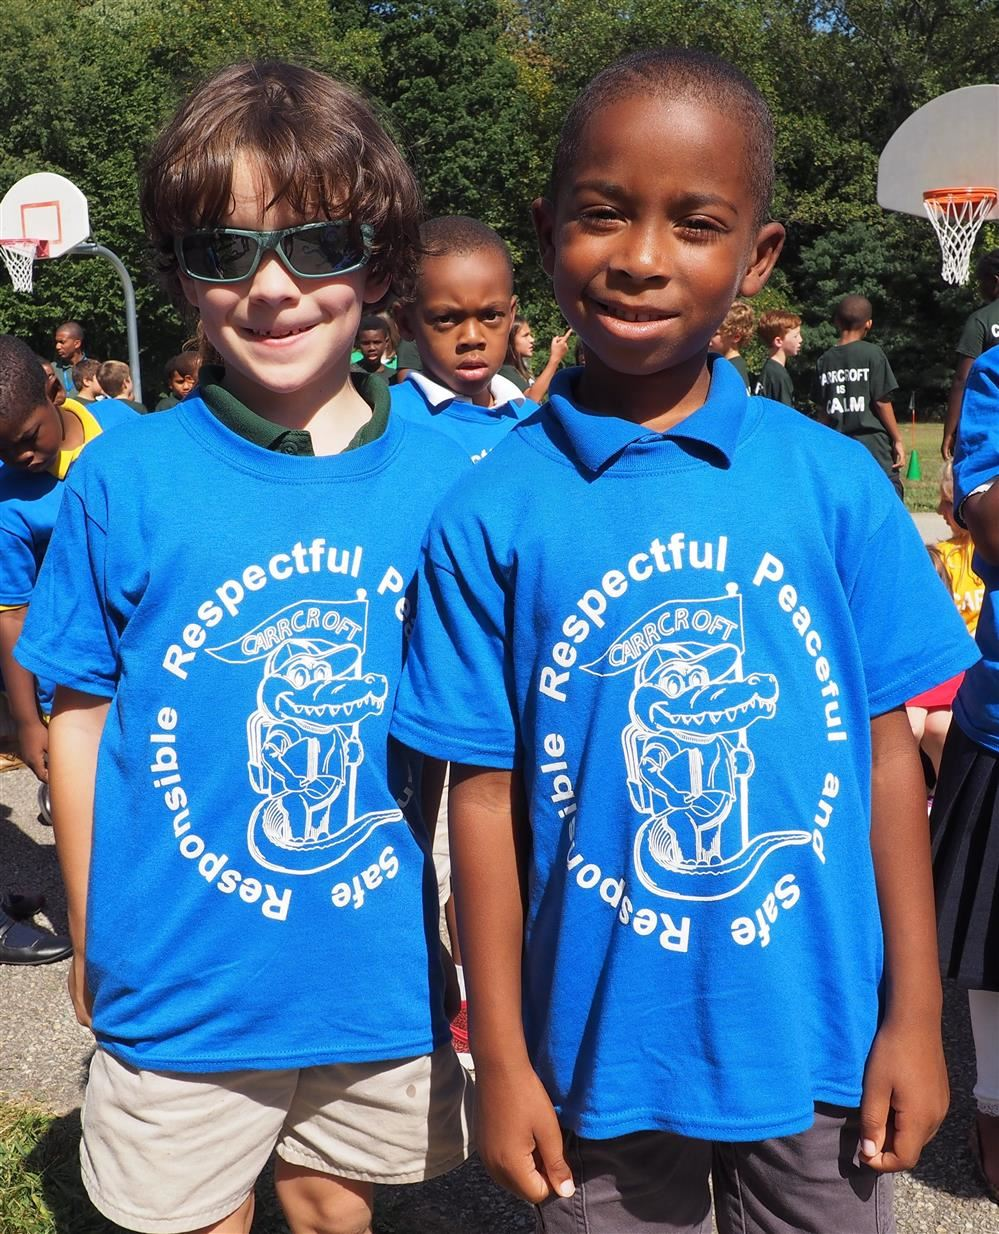 two kids standing together in blue tshirts